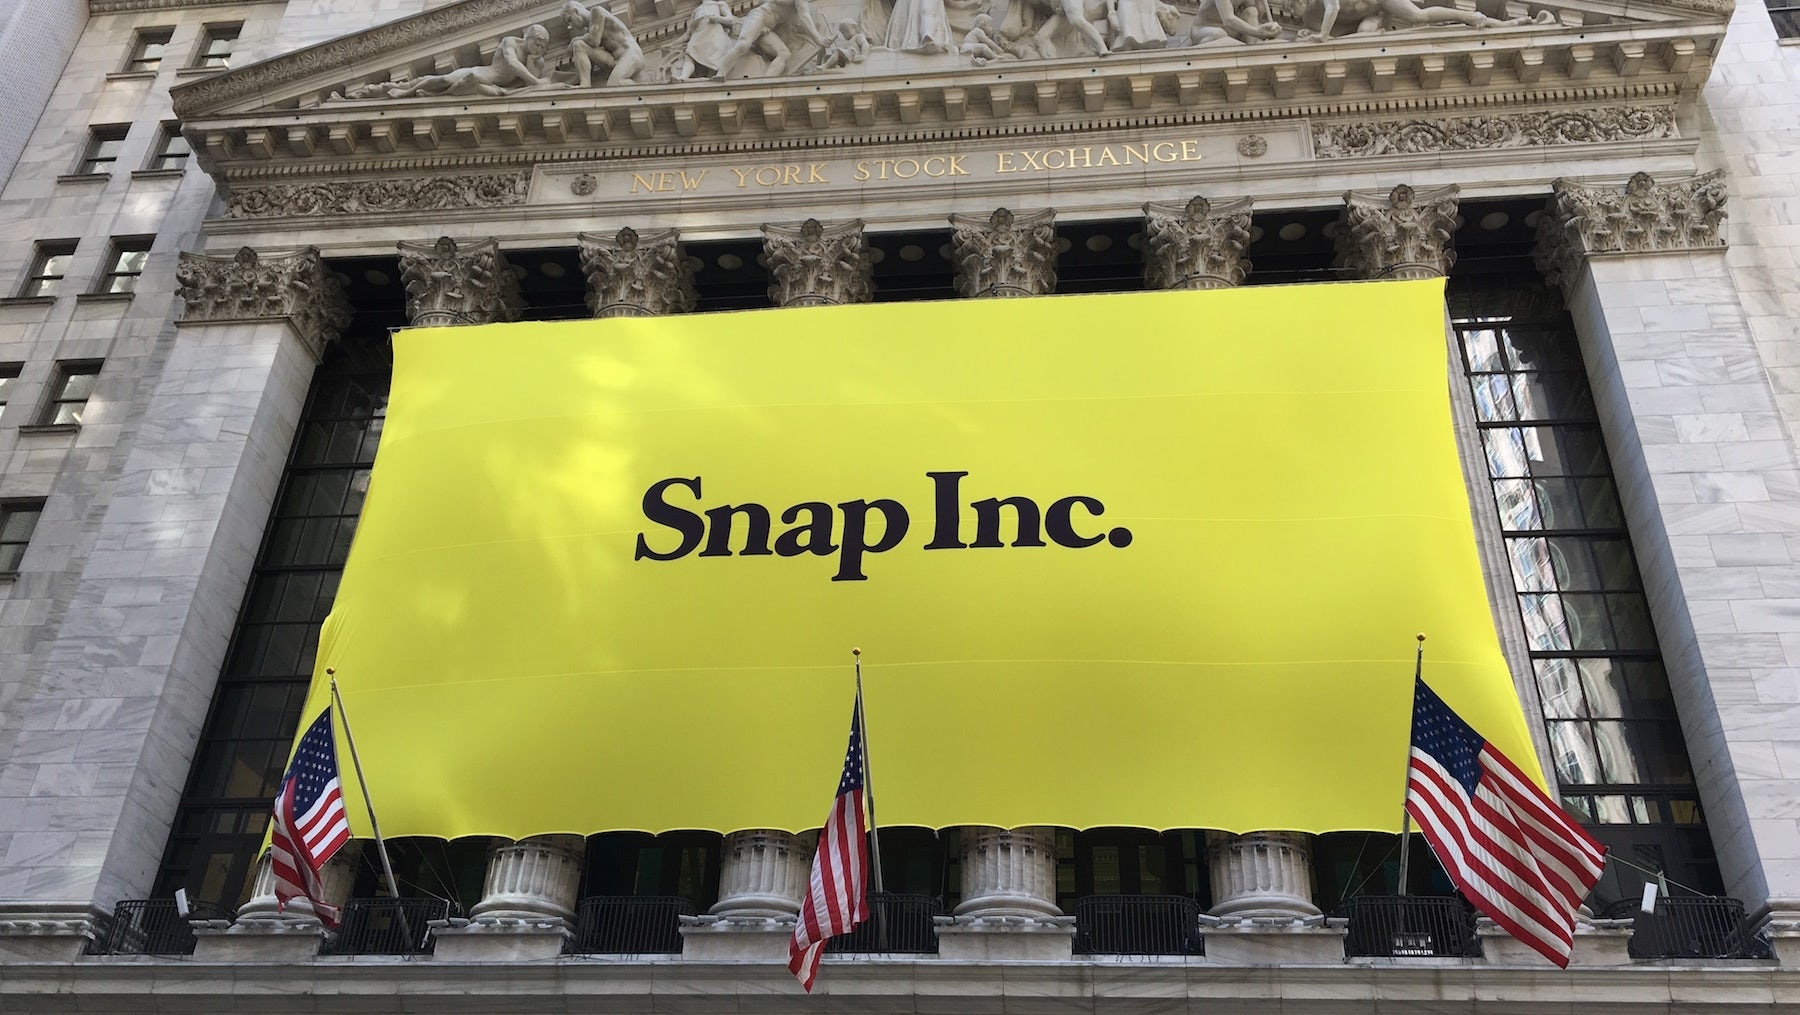 Snapchat makes its debut on the New York Stock Exchange | Source: Shutterstock